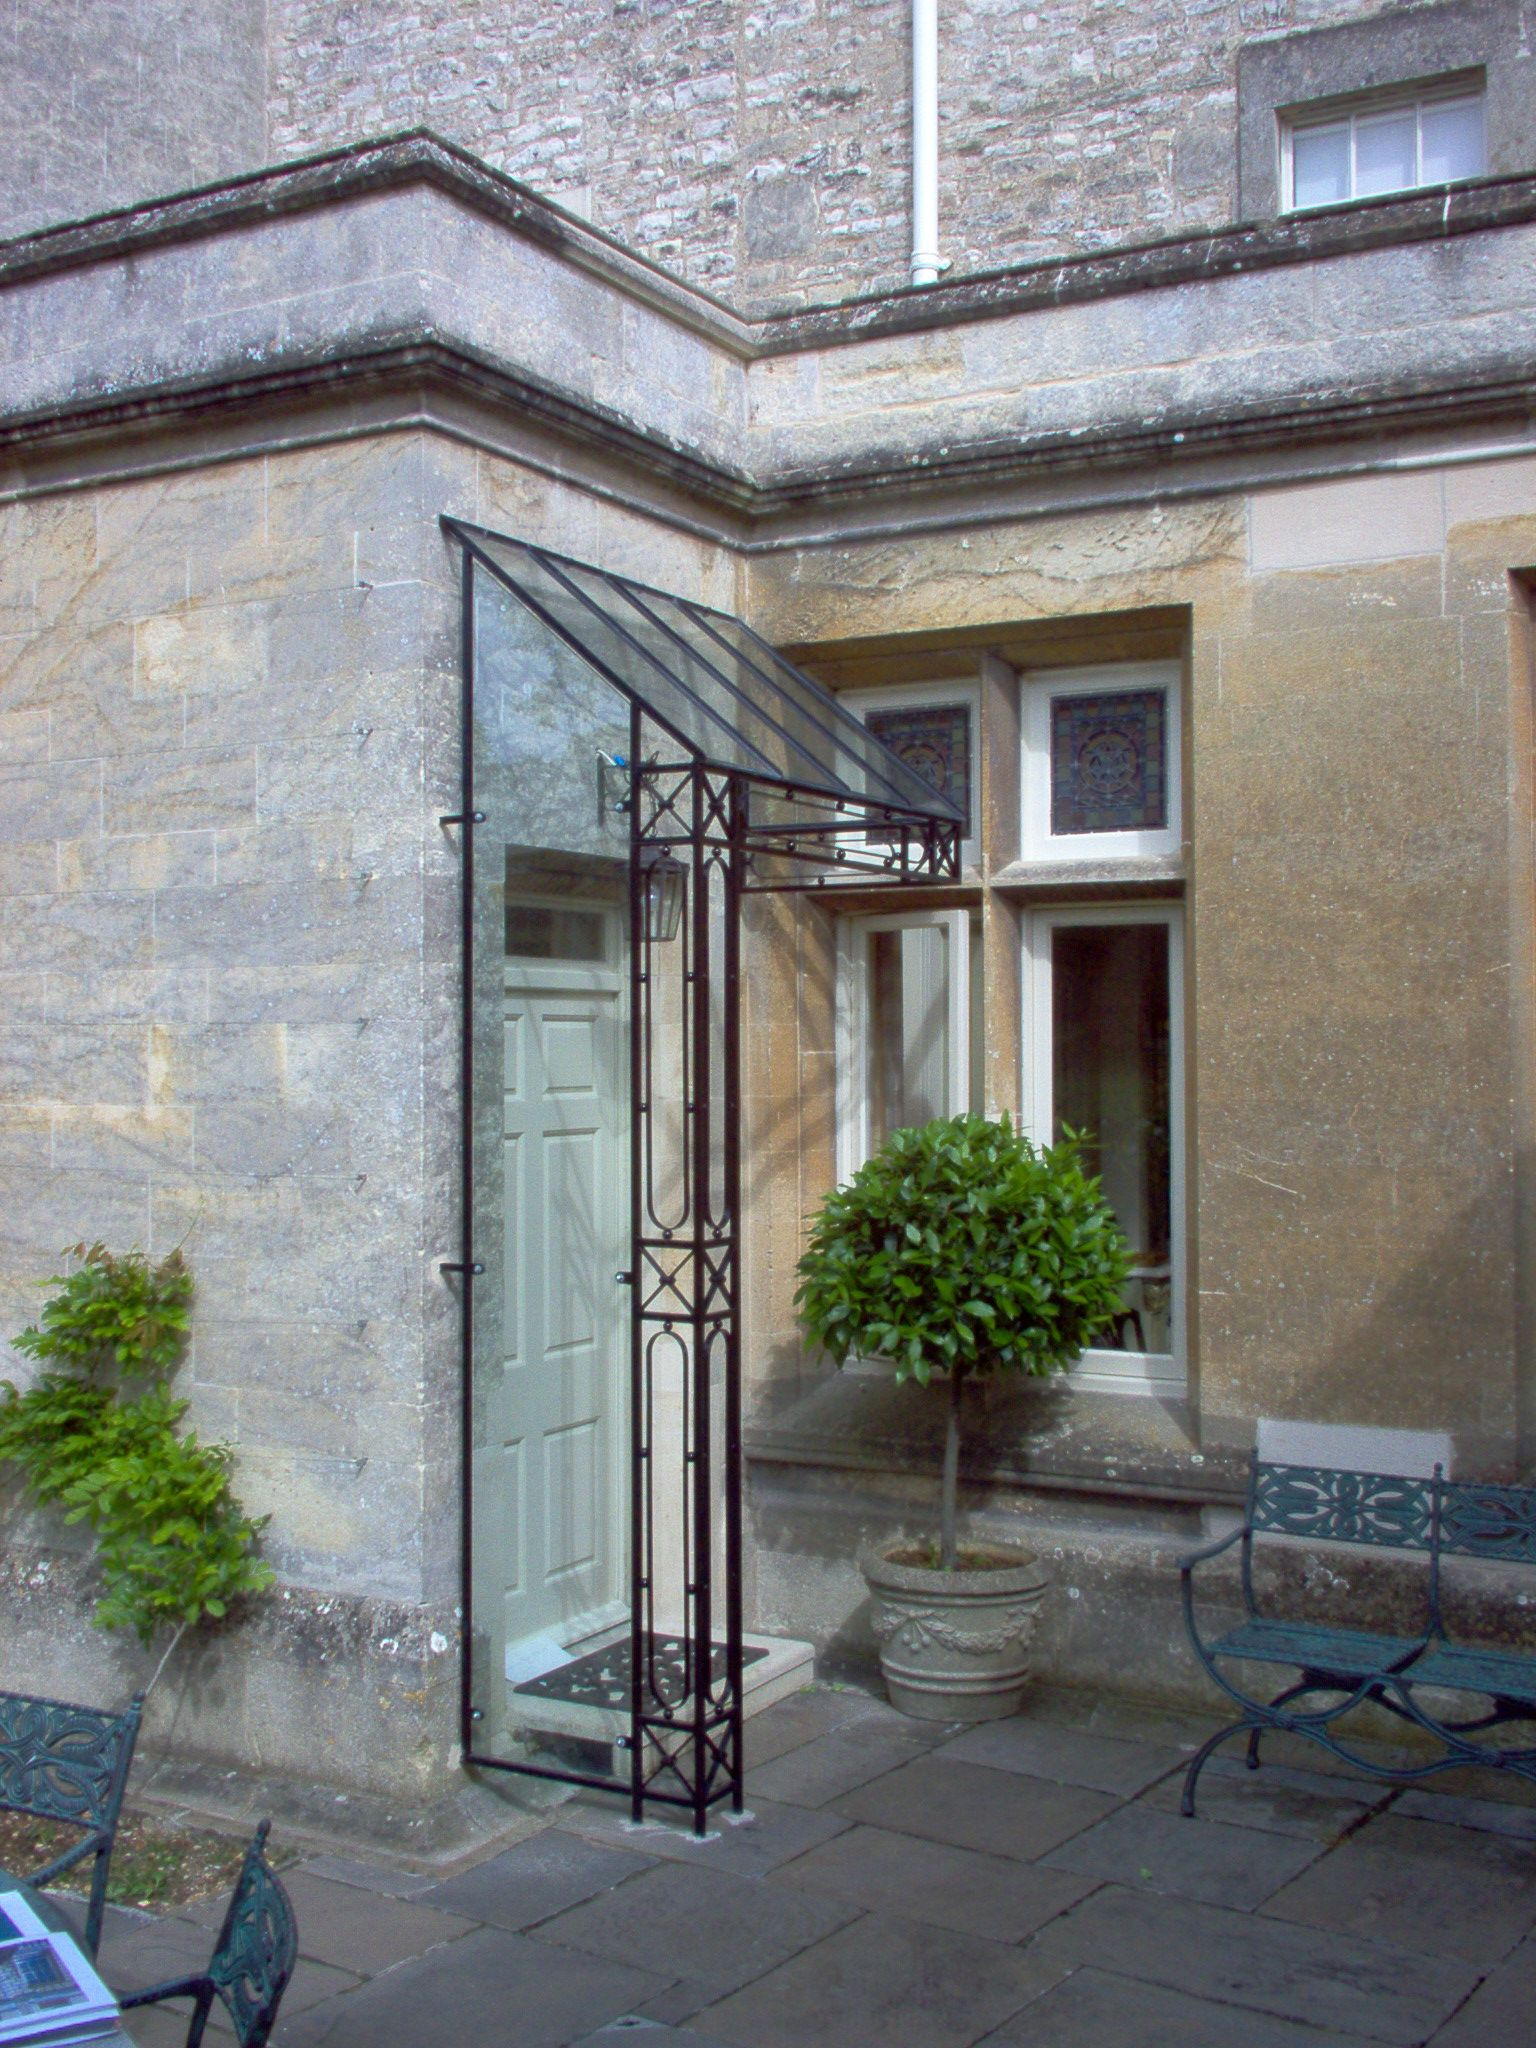 glass wrought iron door awning - Google Search & glass wrought iron door awning - Google Search | Canopies ...